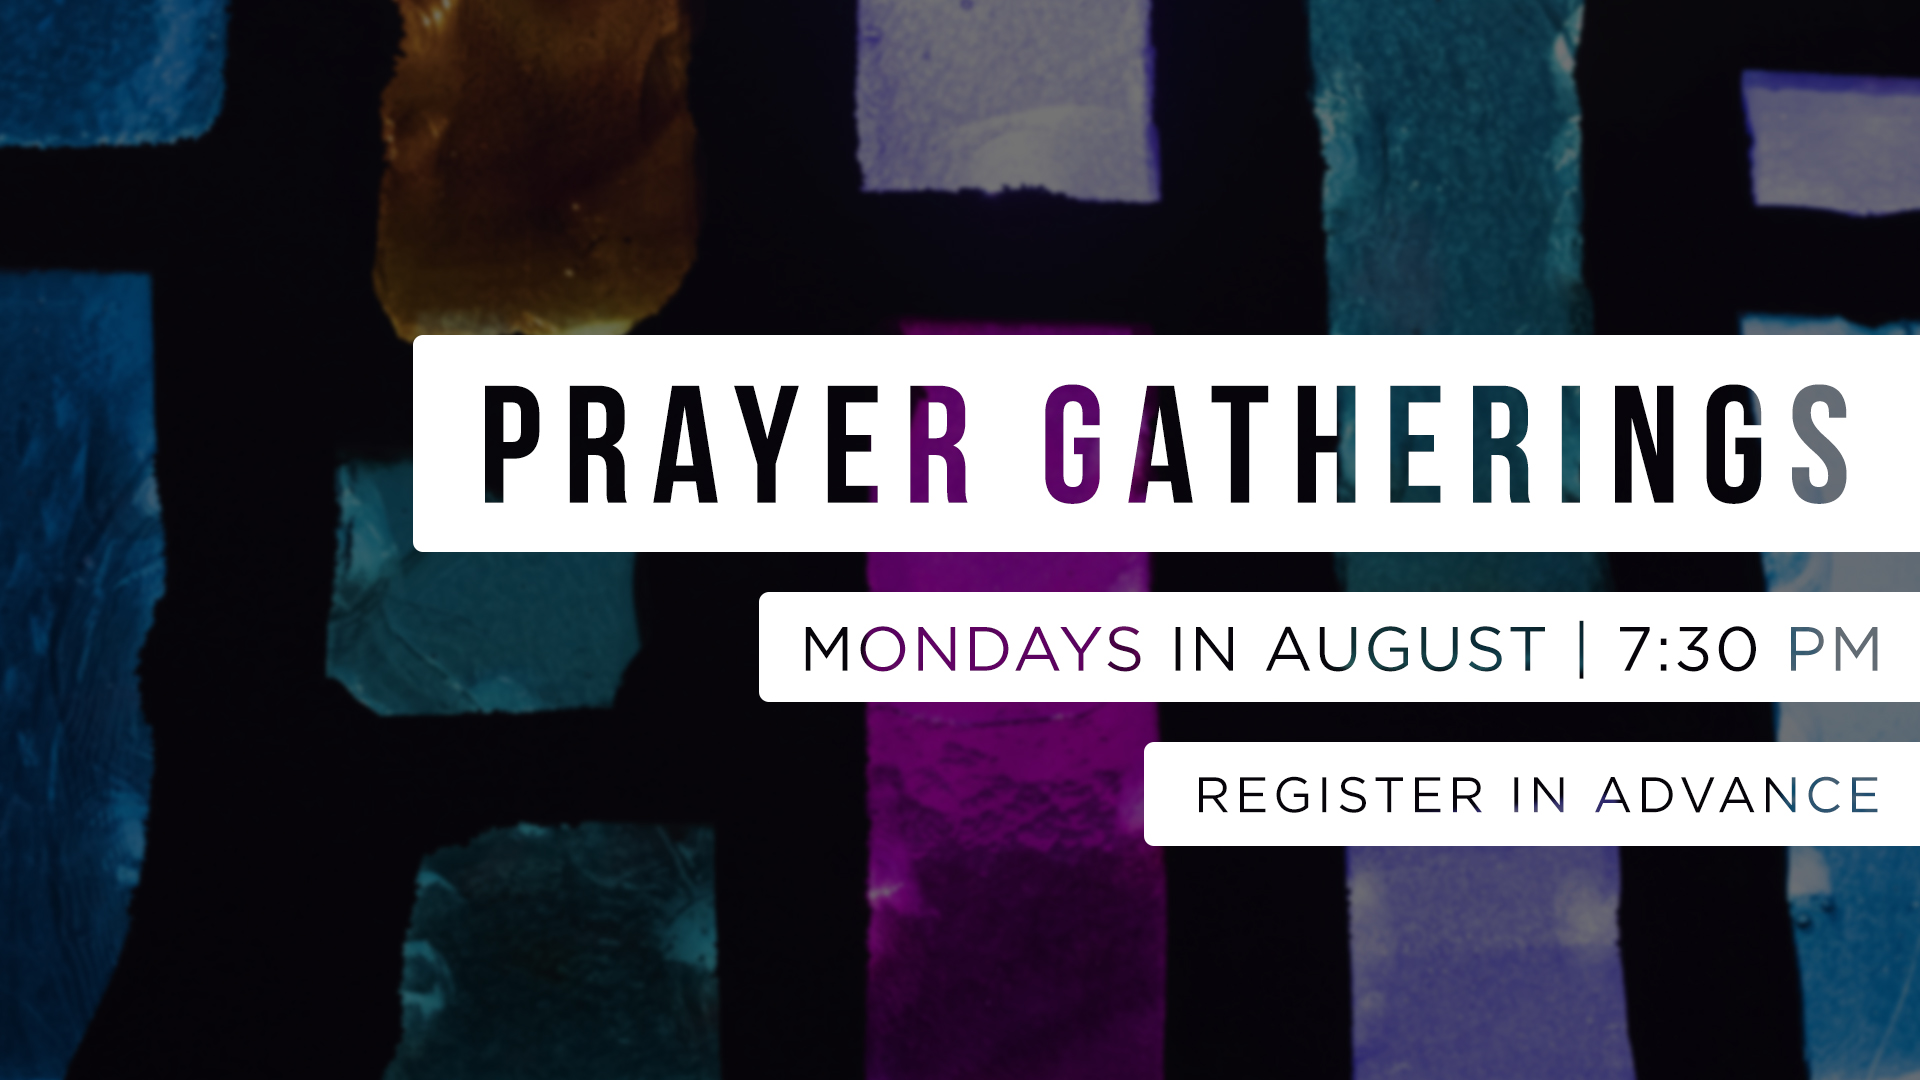 In Person Prayer Gatherings